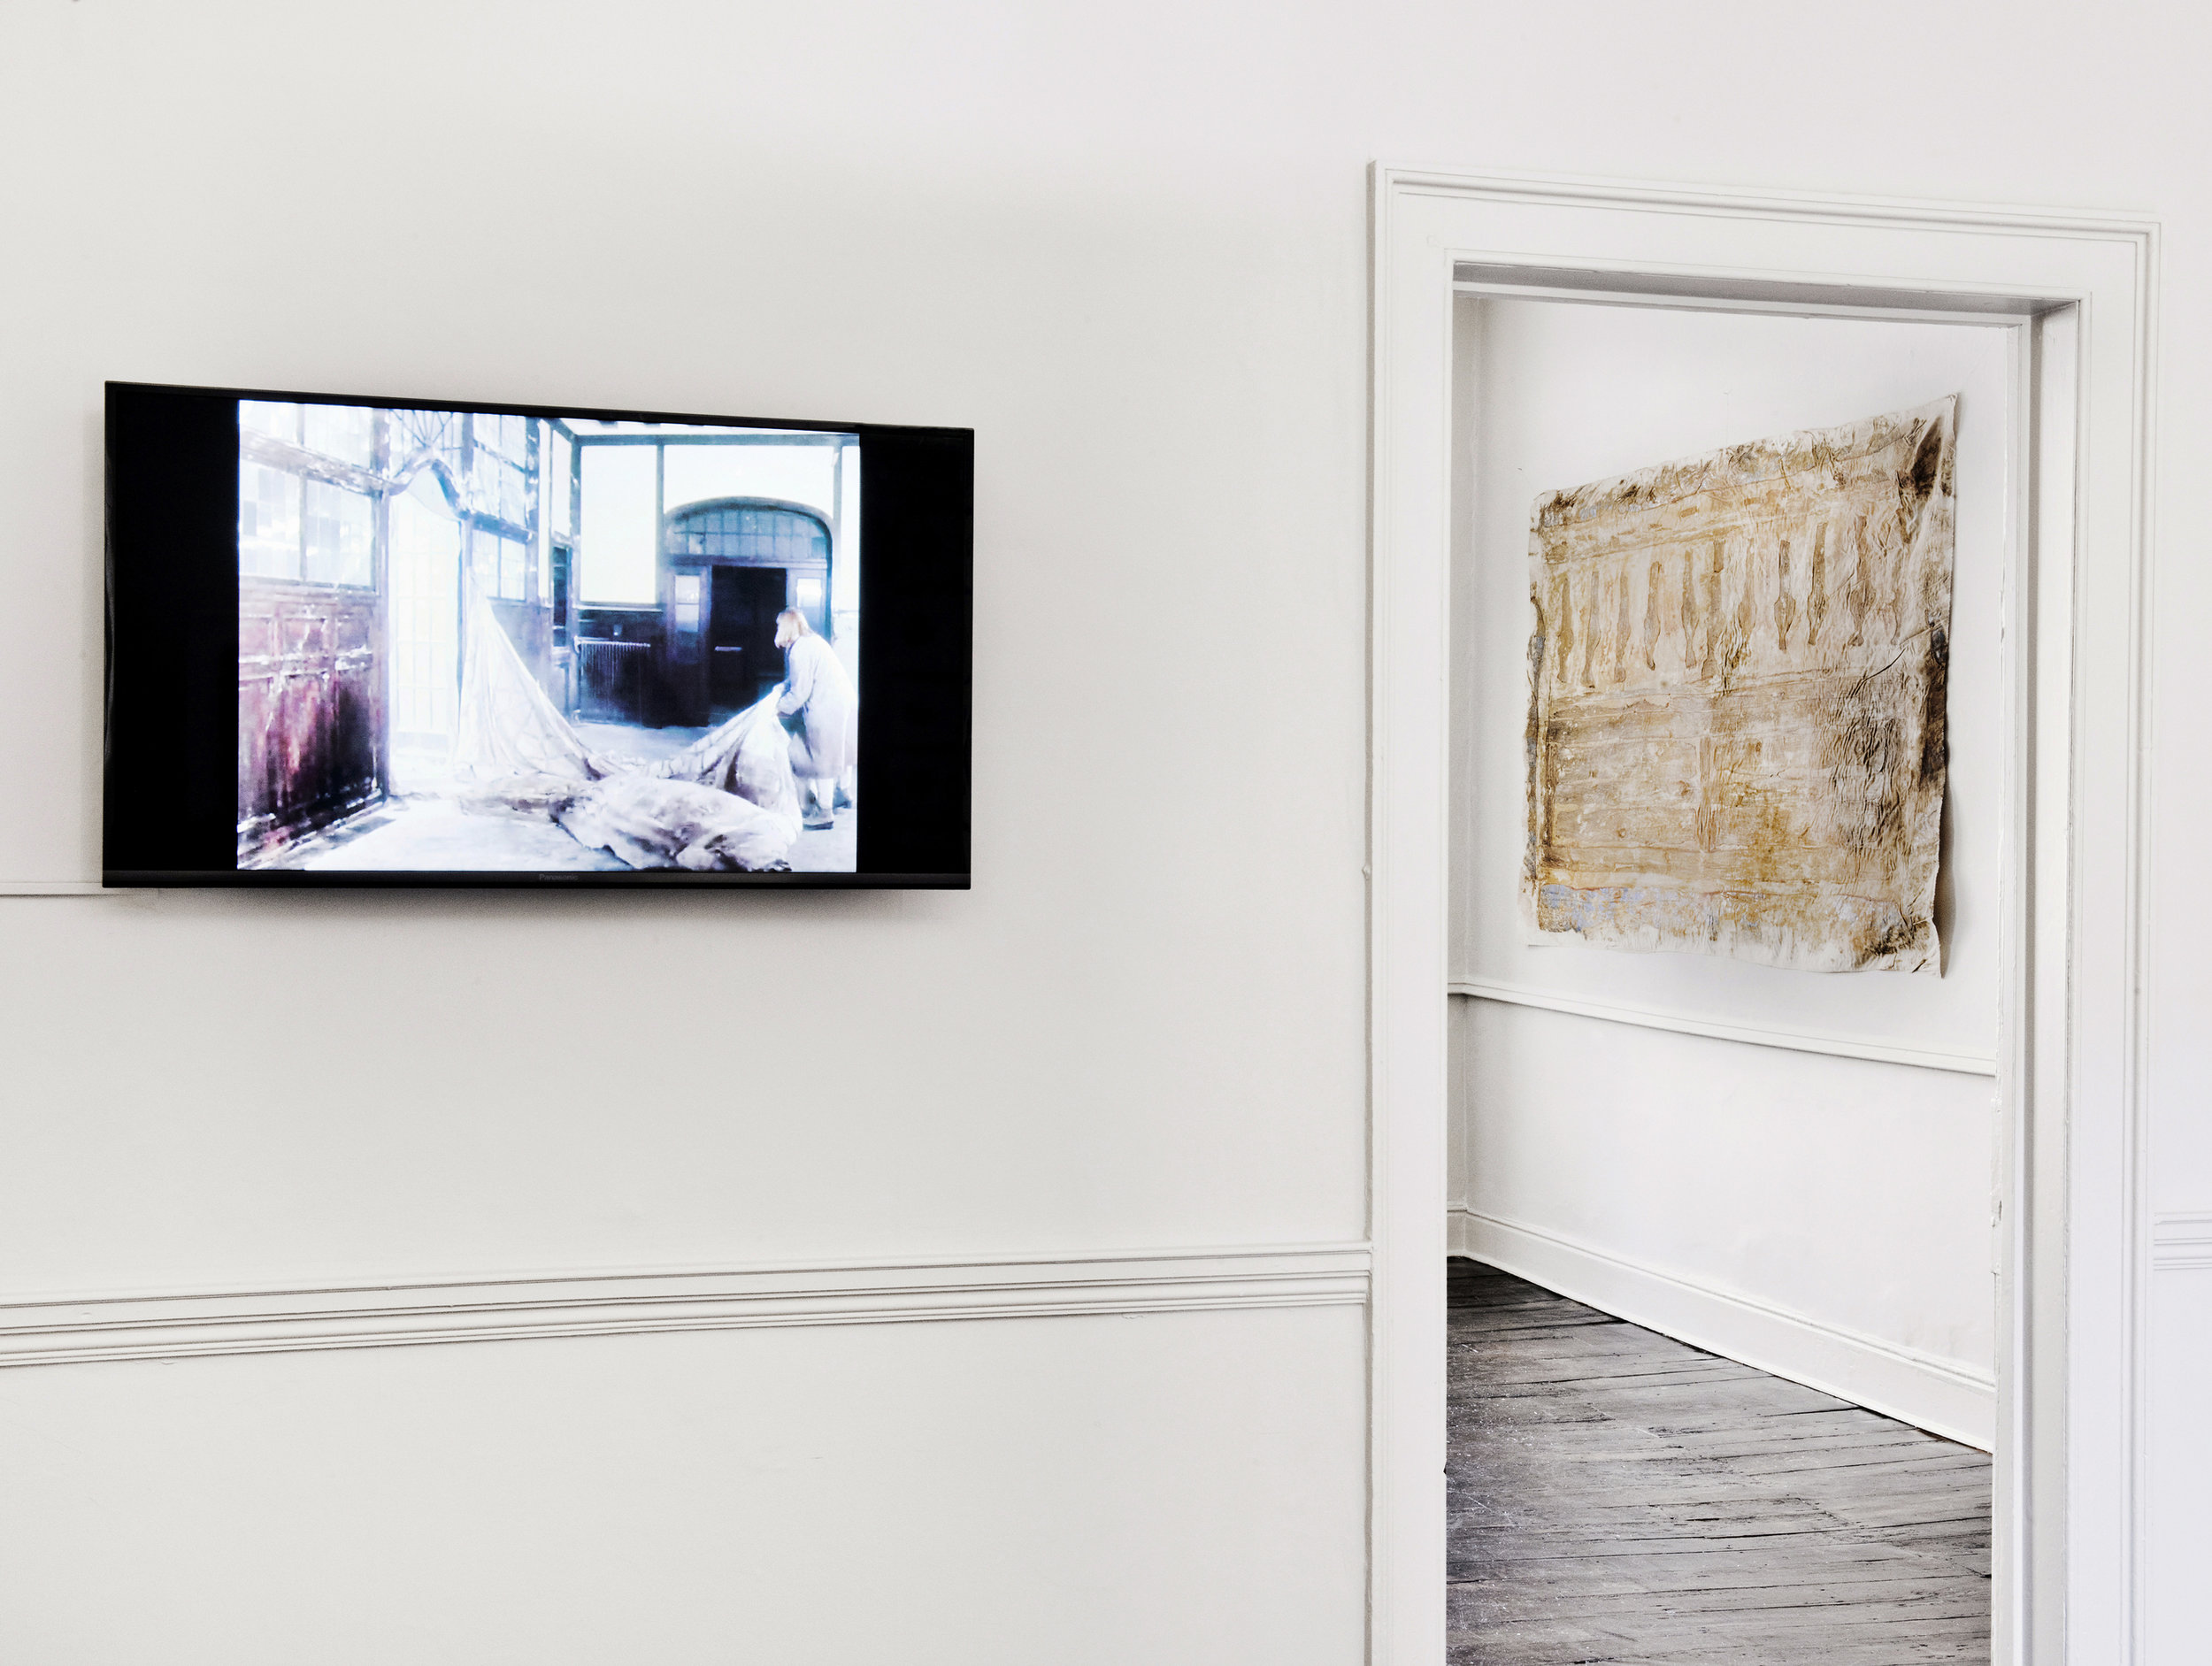 Installation view - Heidi Bucher, still from  Bellevue , 1990, Kreuzlingen